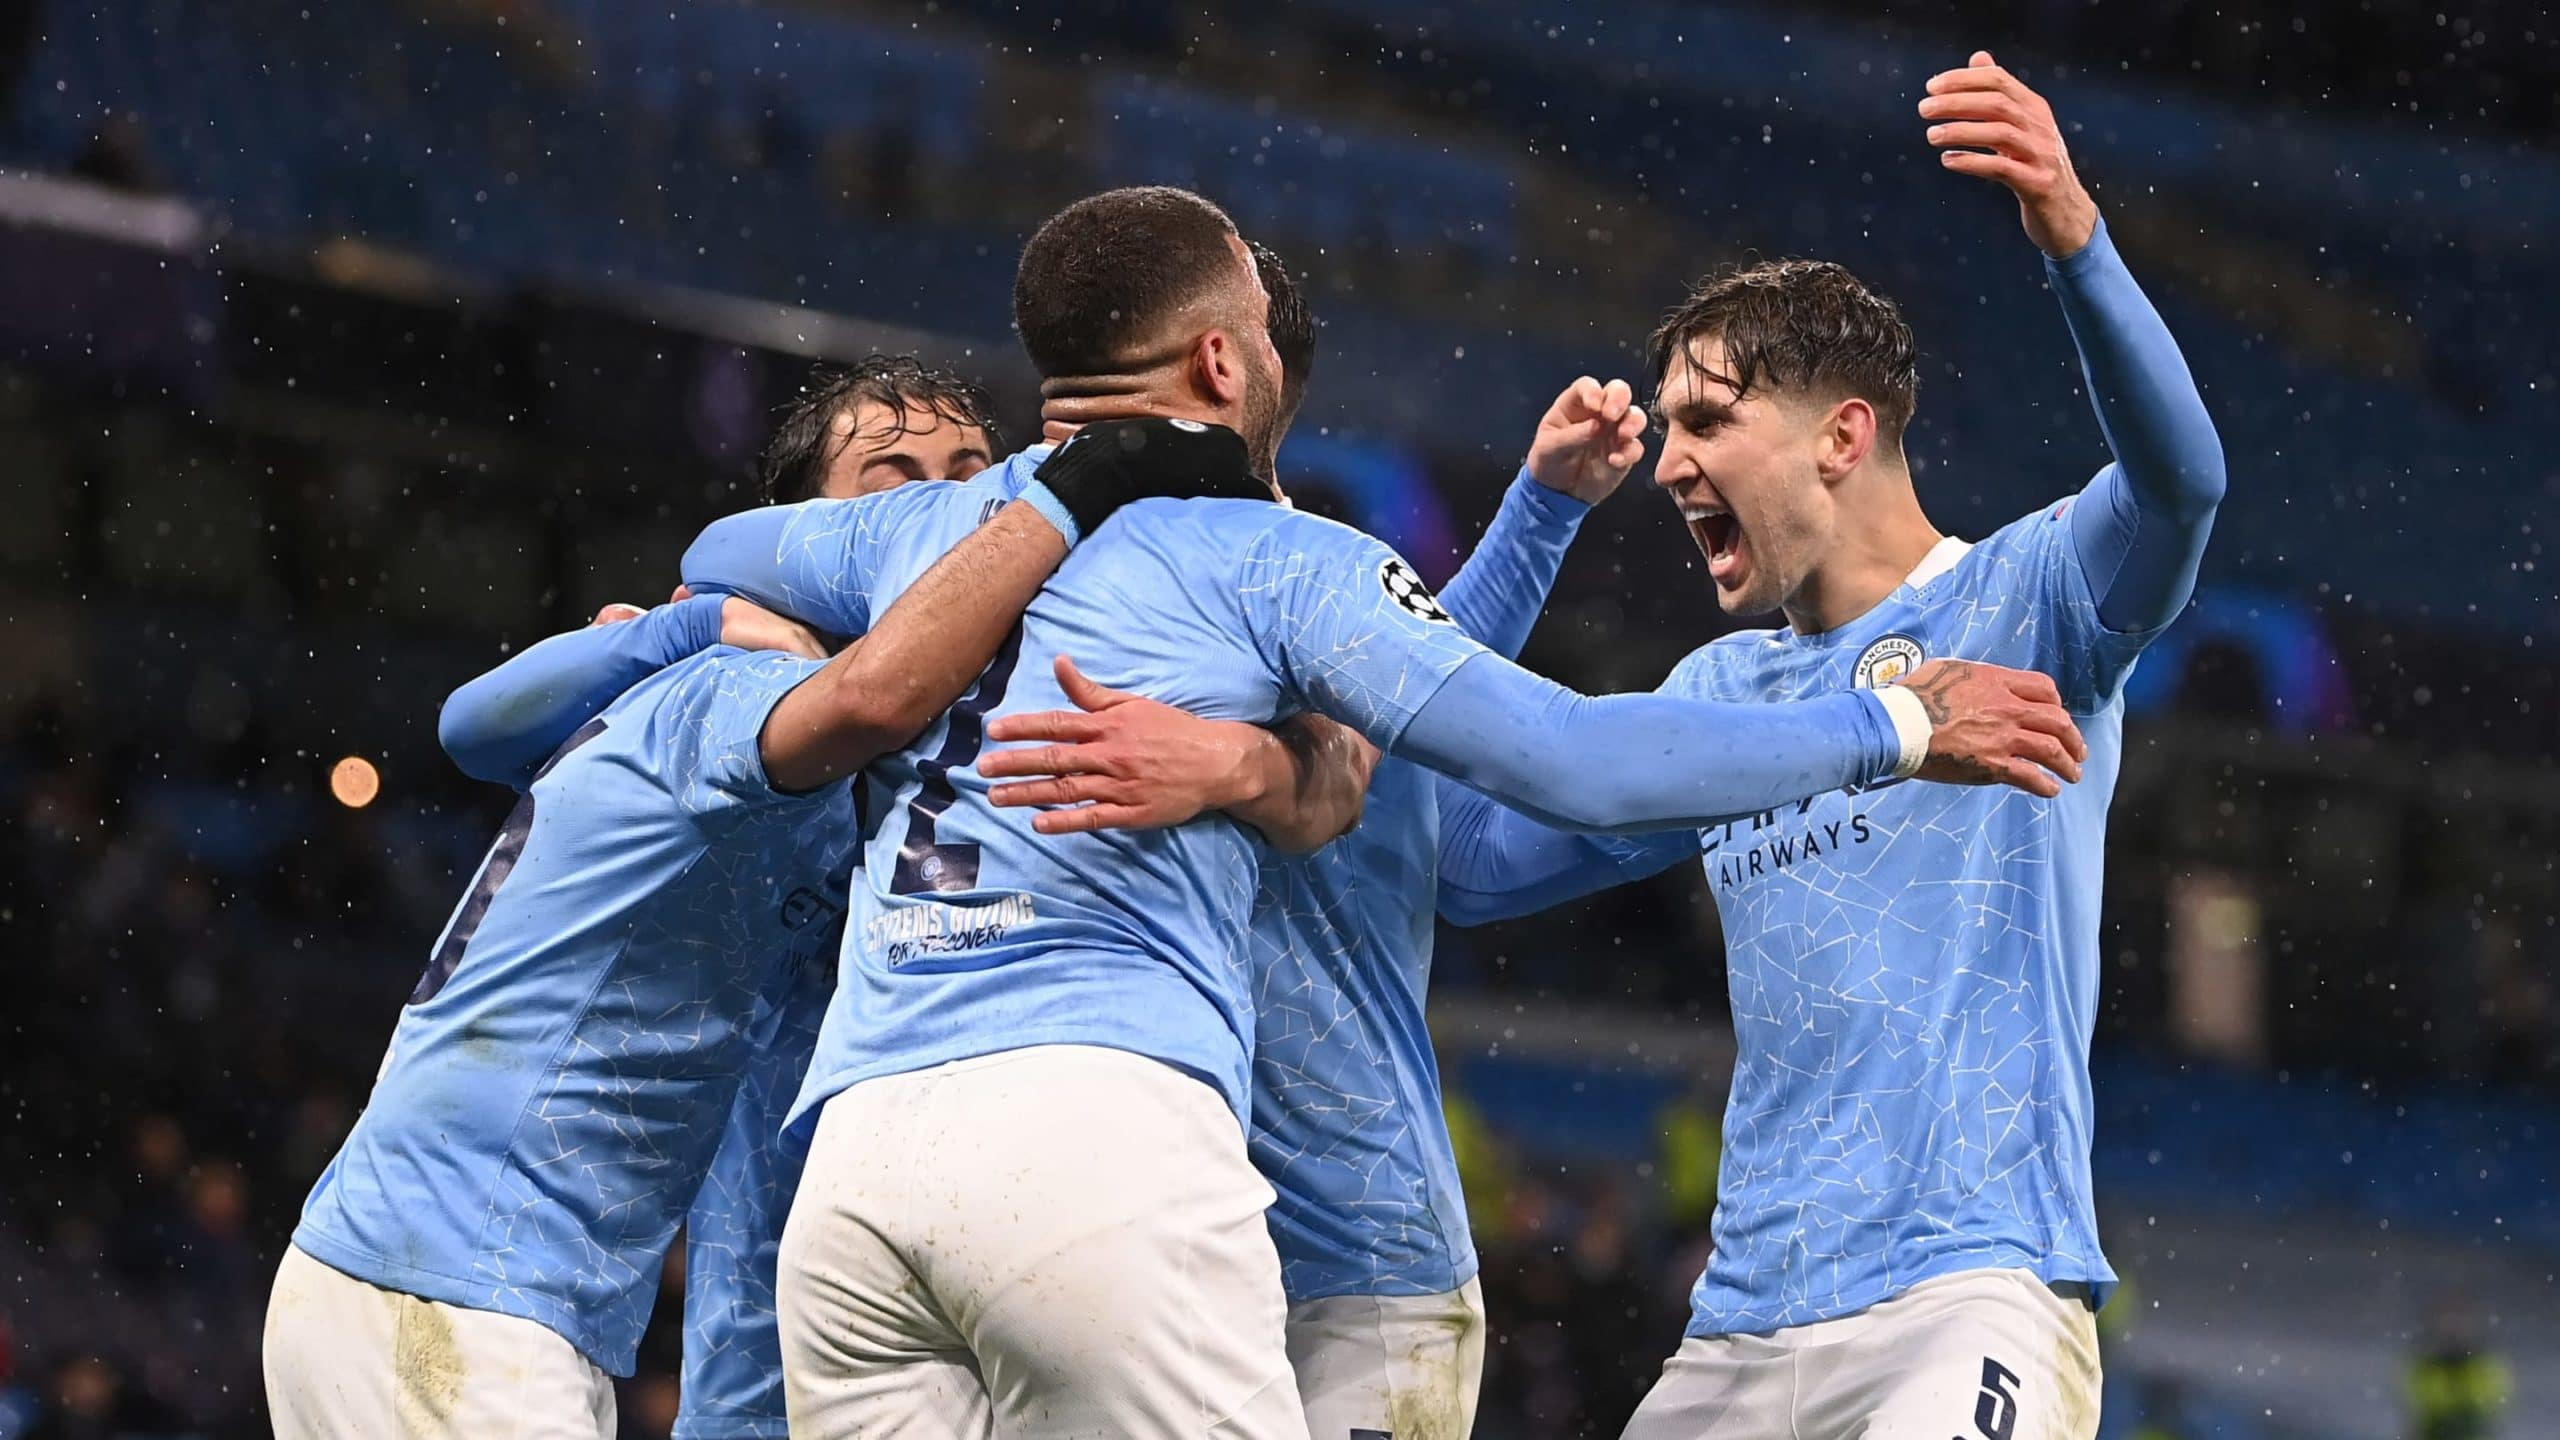 manchester-metropoliss-renewed-mentality-helps-them-reach-lengthy-past-due-champions-league-closing.jpg